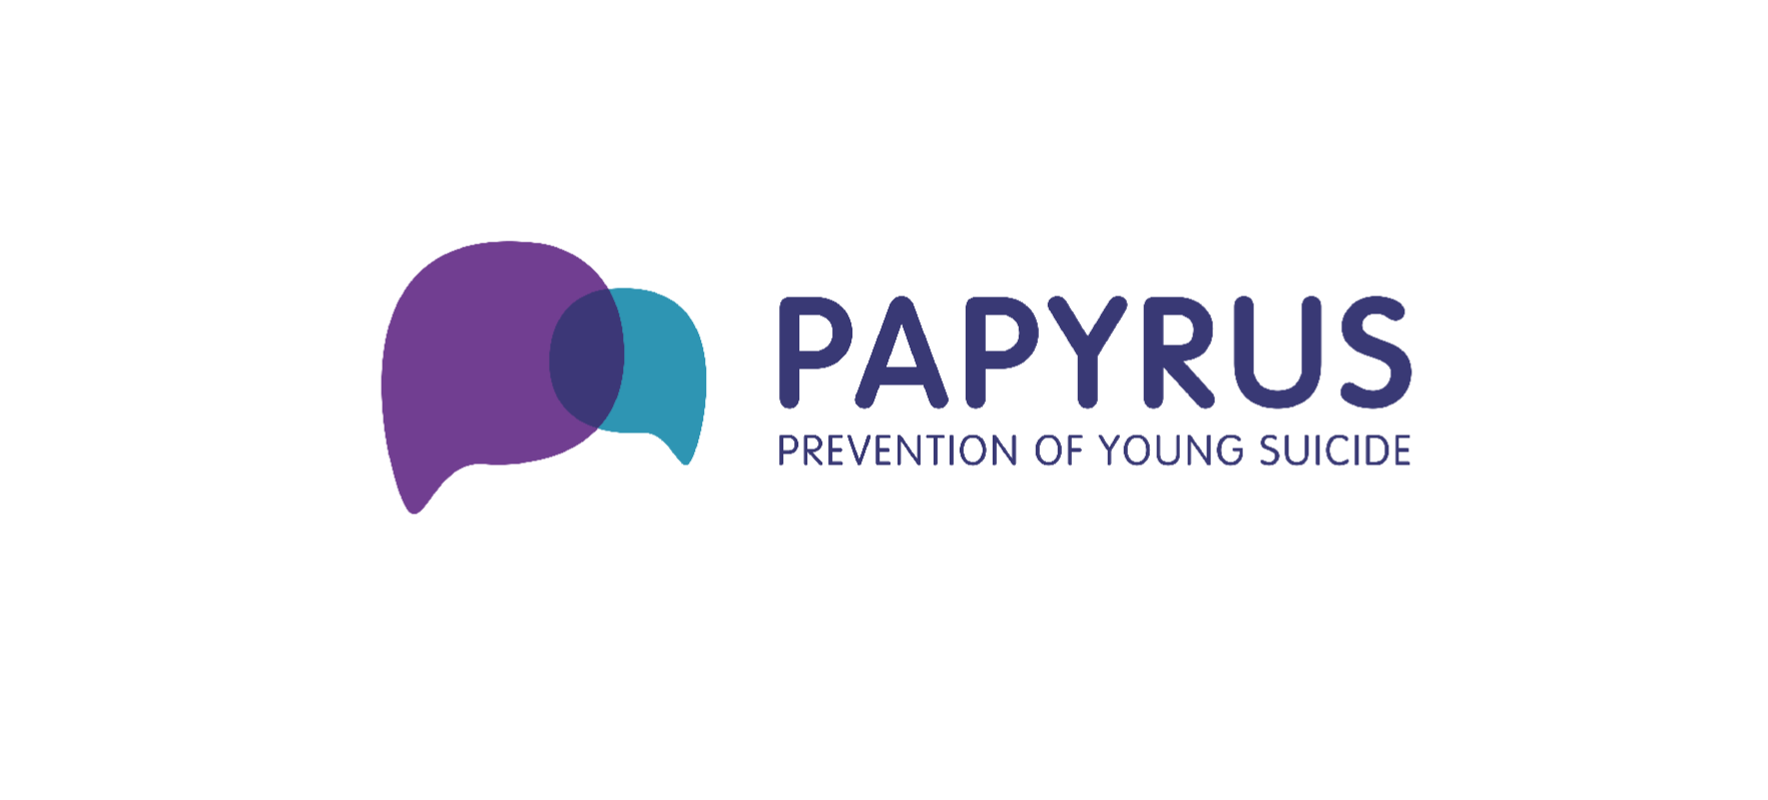 Royal Life Saving Society UK launch partnership with PAPYRUS Suicide Charity